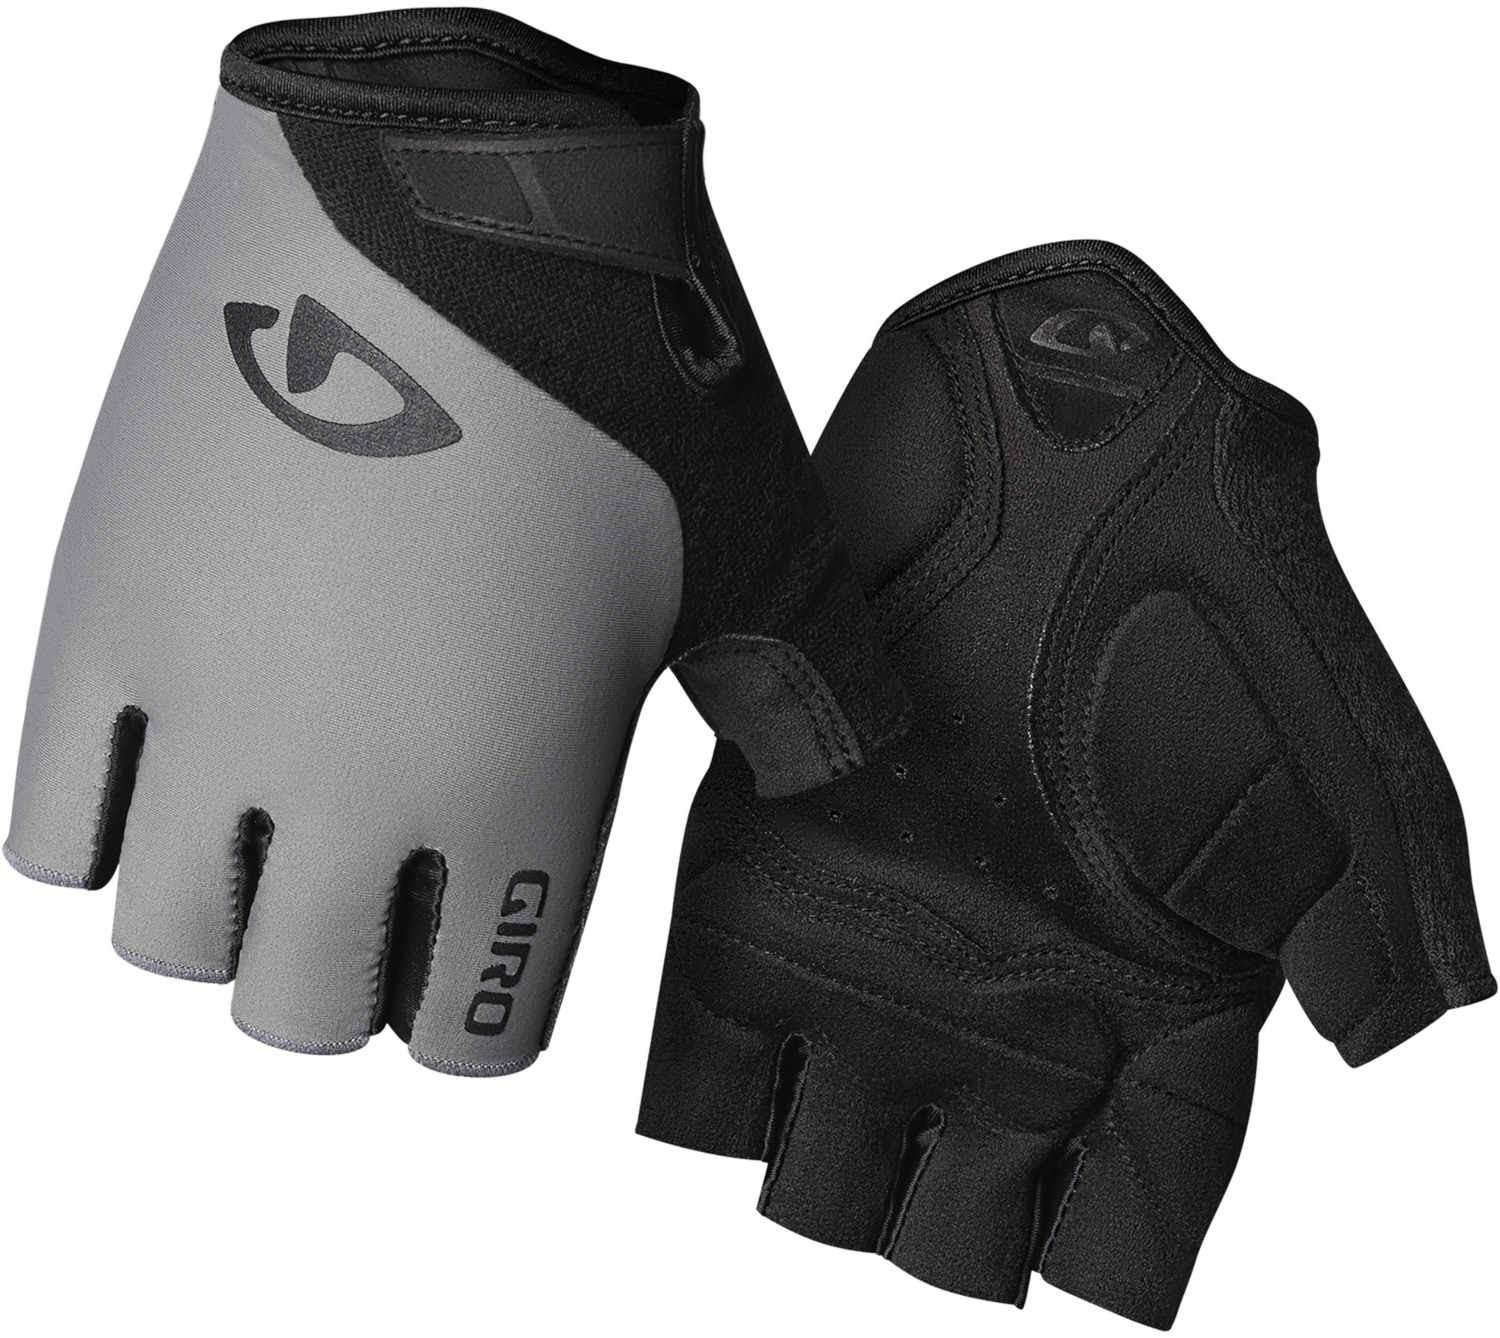 Giro Jag Gloves Charcoal XL